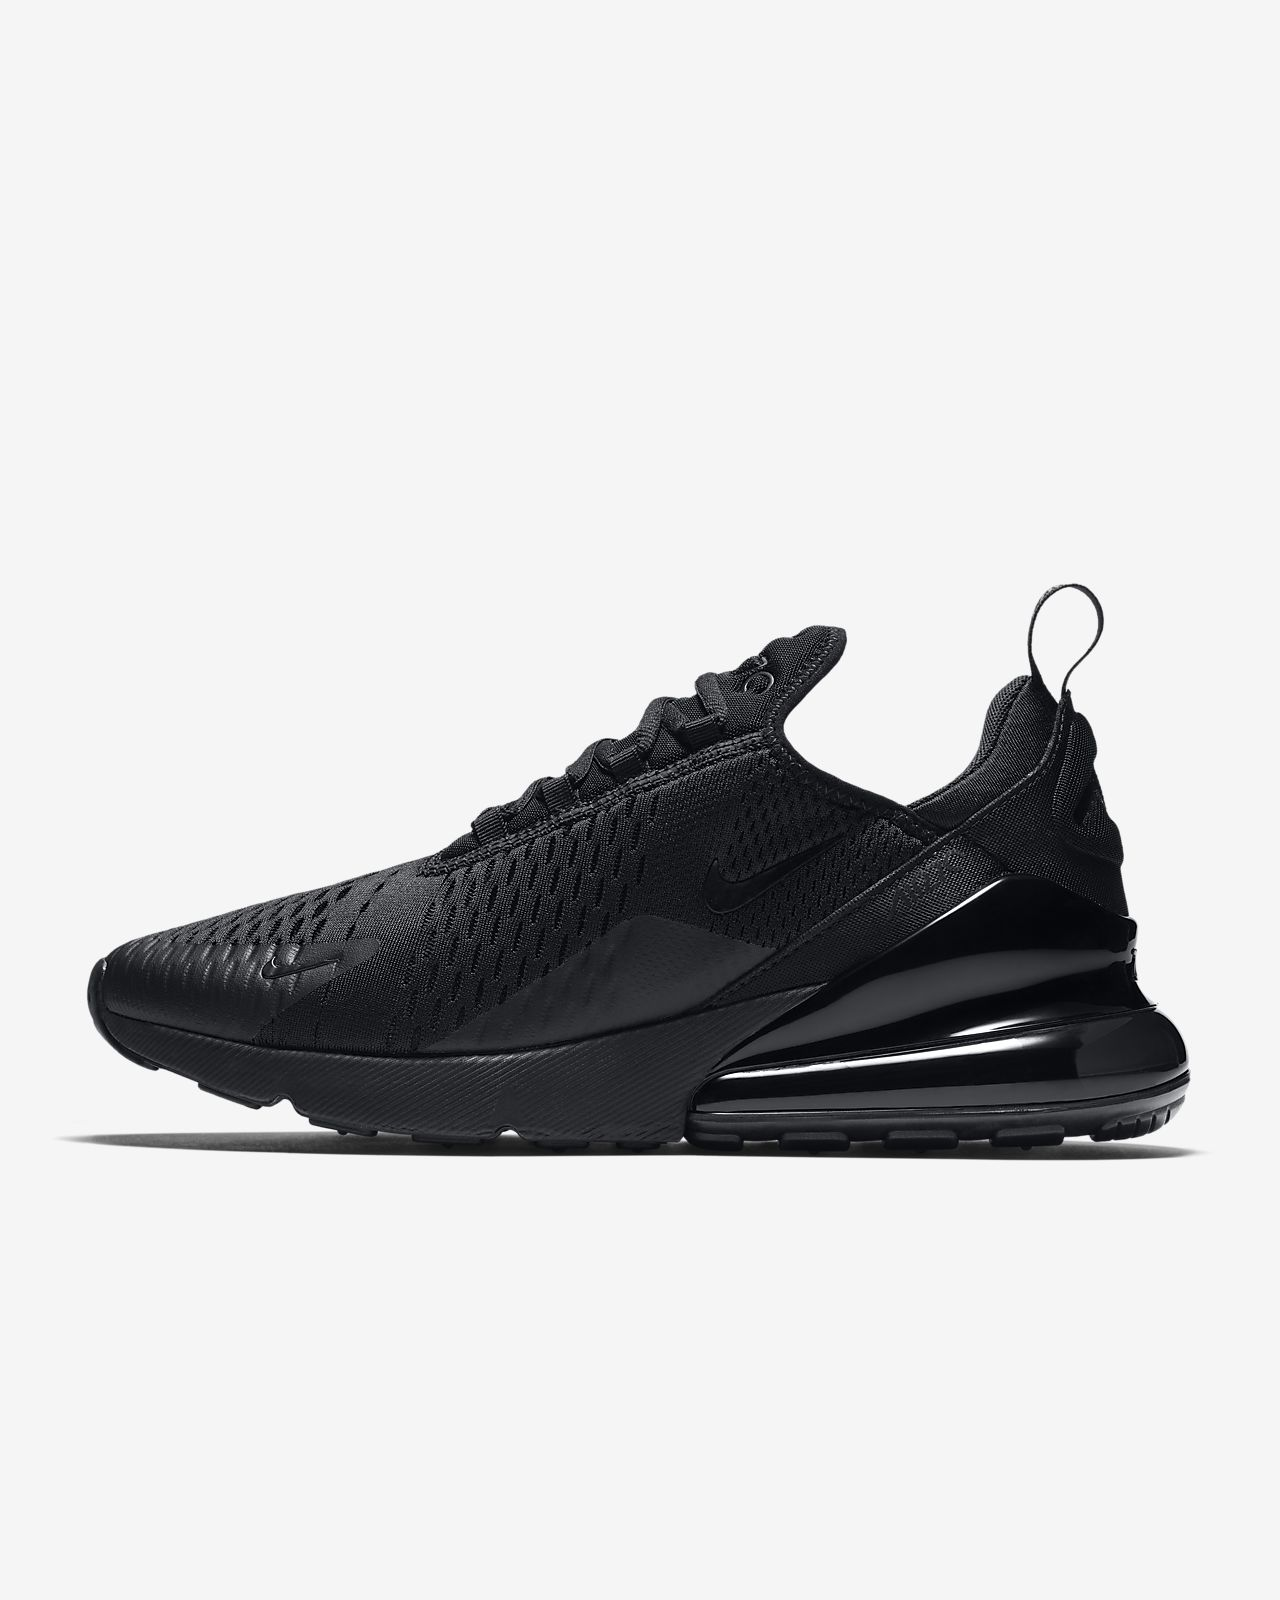 a50d5ac9d167 Nike Air Max 270 Men s Shoe. Nike.com ZA